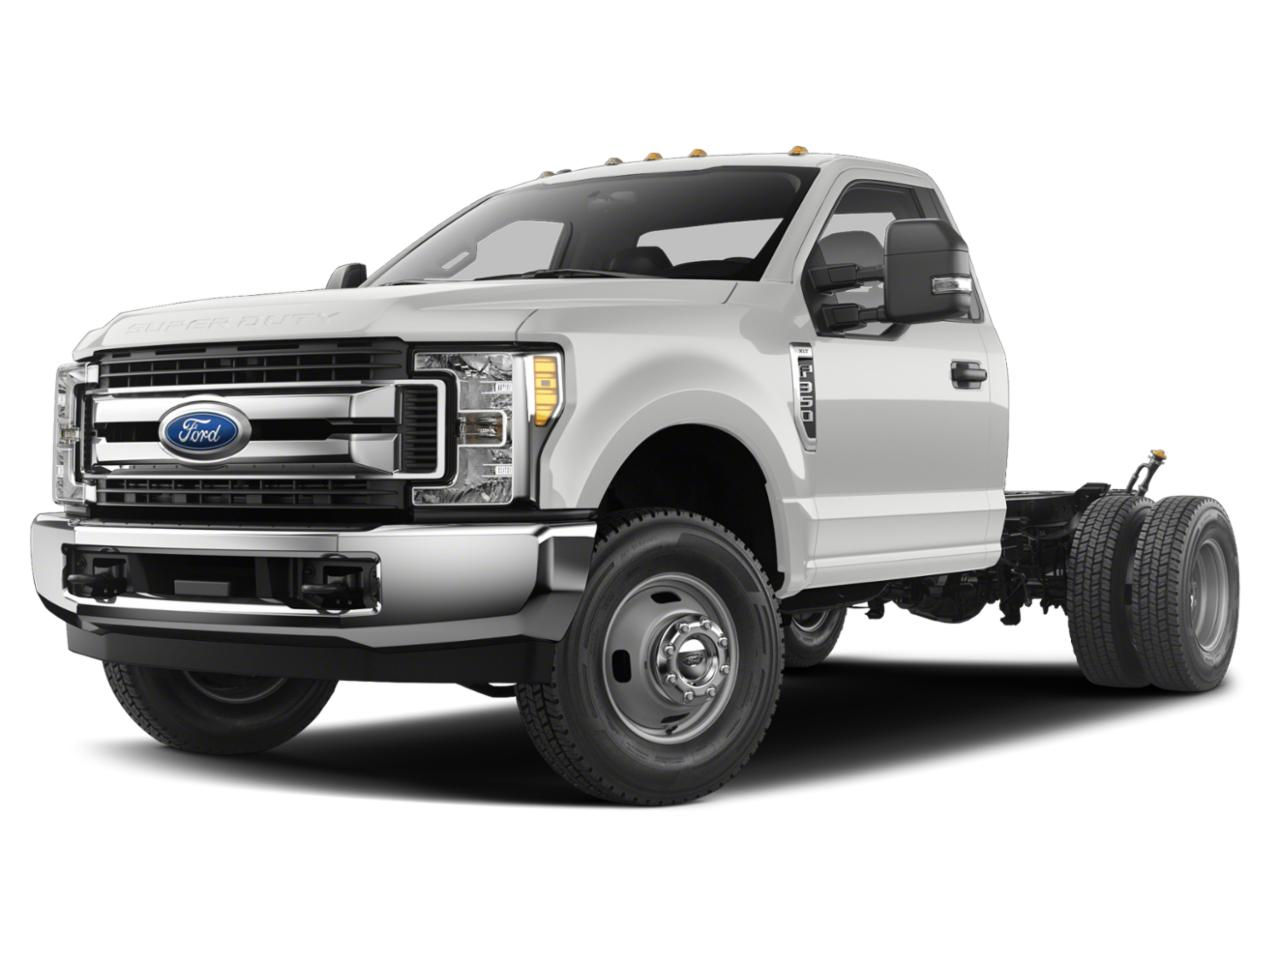 2019 Ford F-350SD XL Regular Cab Chassis-Cab Slide